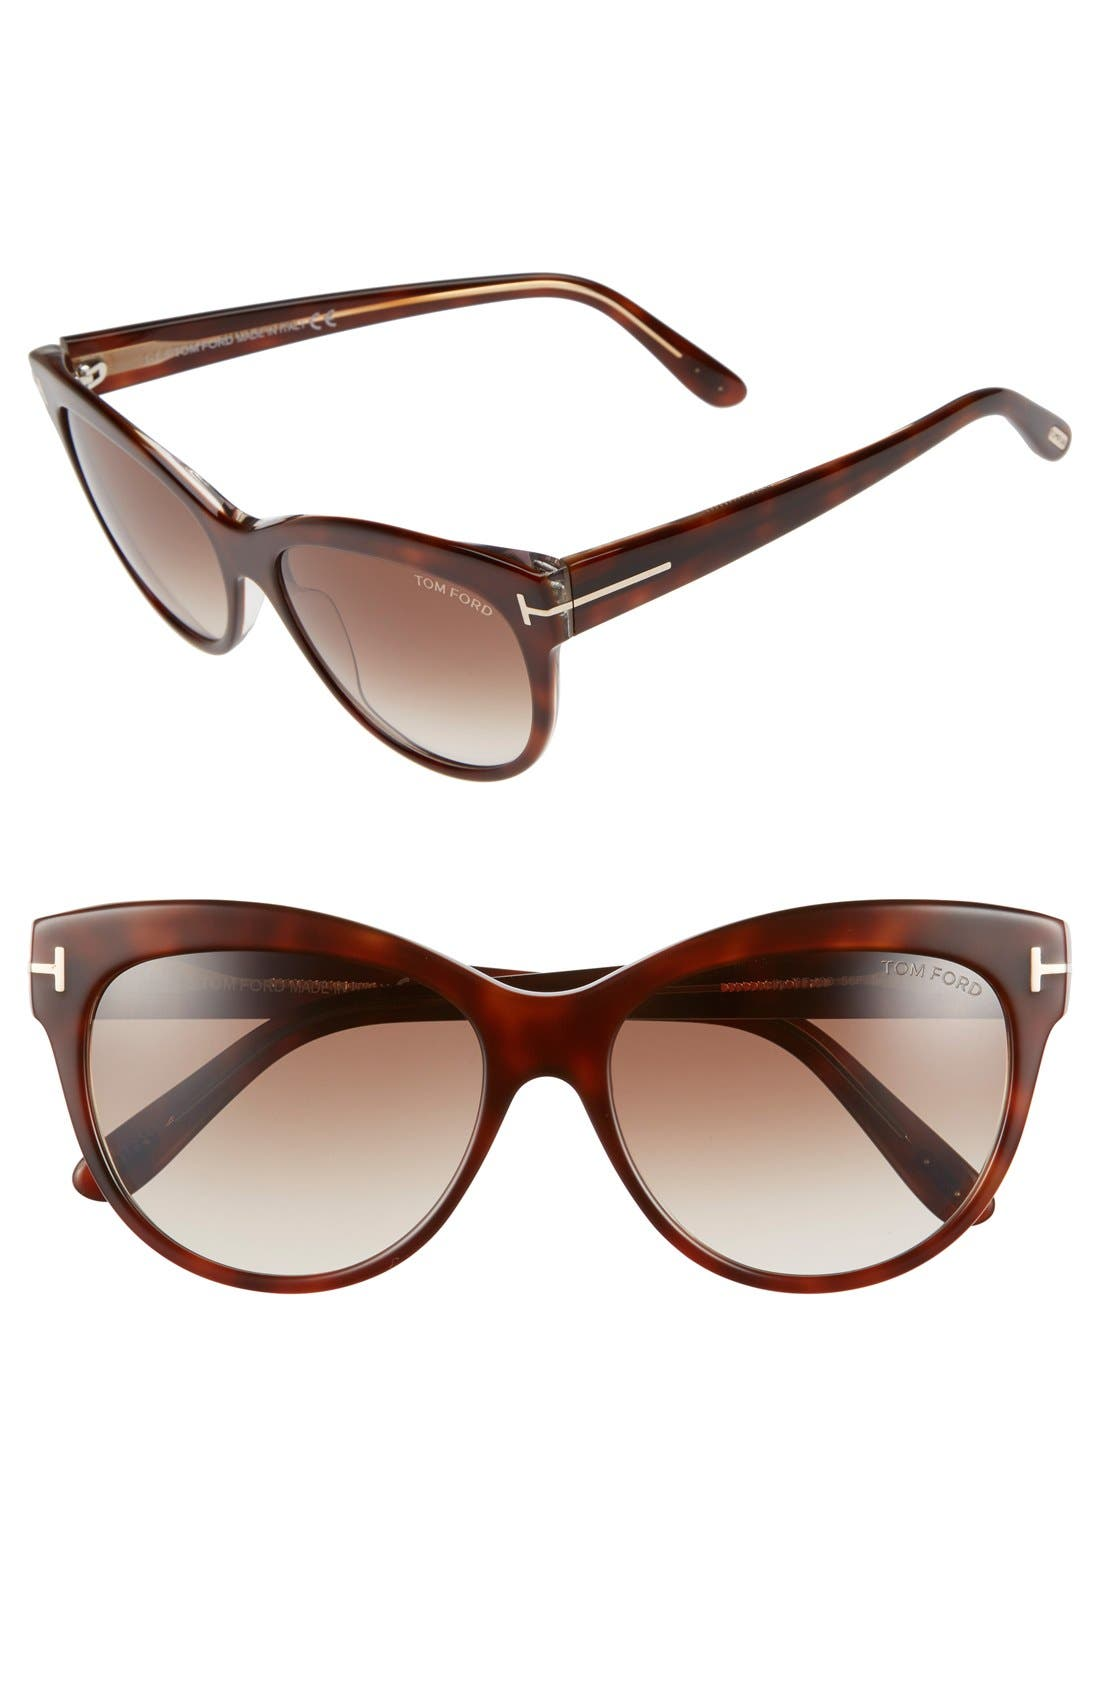 'Lily' 56mm Cat Eye Sunglasses,                             Main thumbnail 1, color,                             Havana/ Gradient Brown